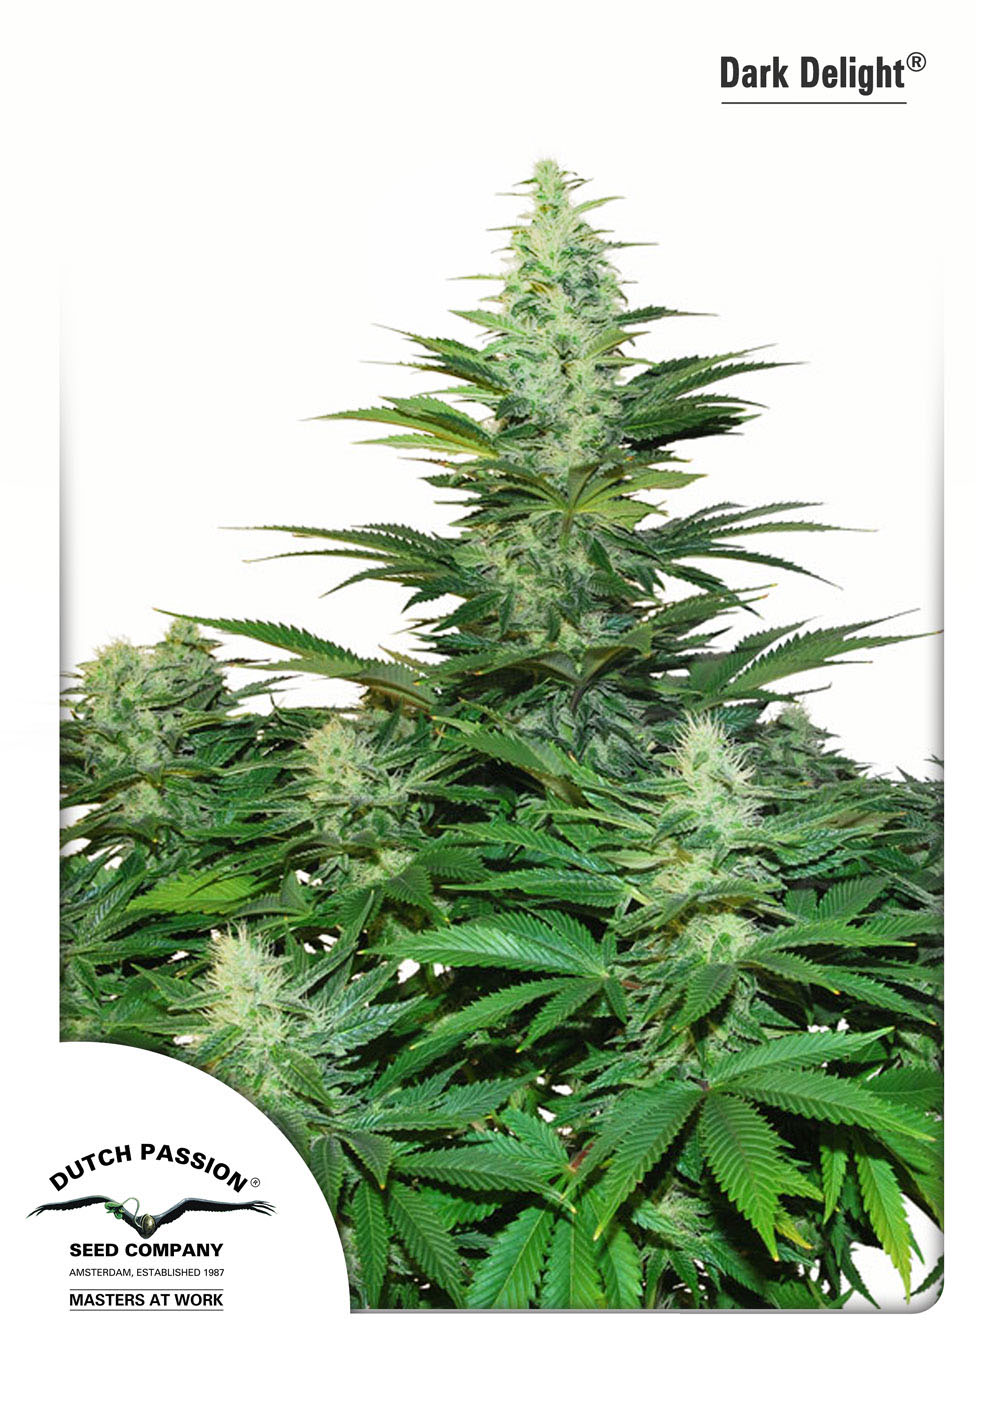 Recenzja Odmiany Dark Delight od Dutch Passion, Dutch Seeds